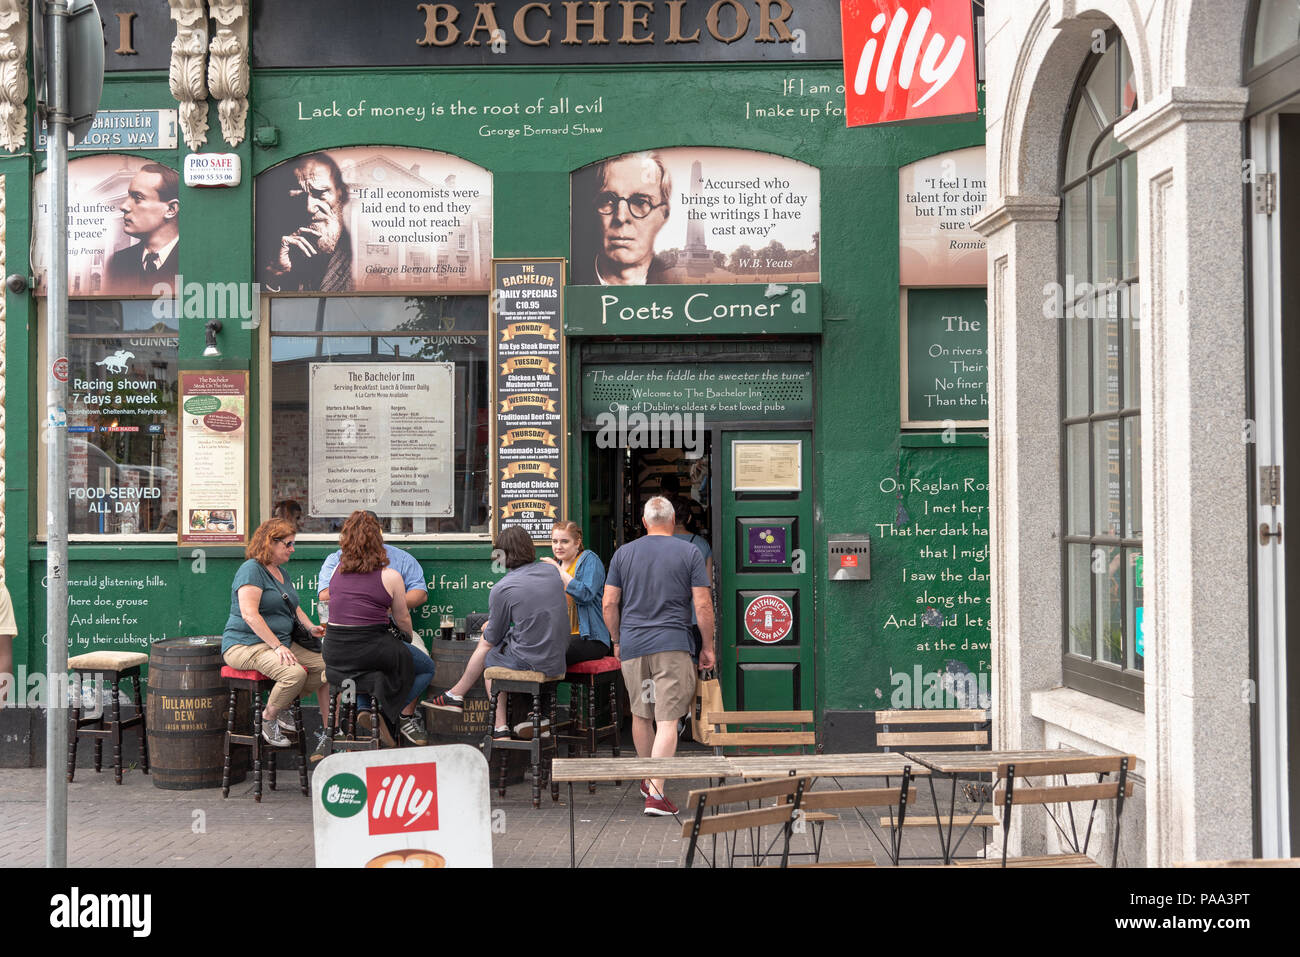 People sit down and enjoy a pint outside a pub in Ireland. A man is entering the doorway. - Stock Image